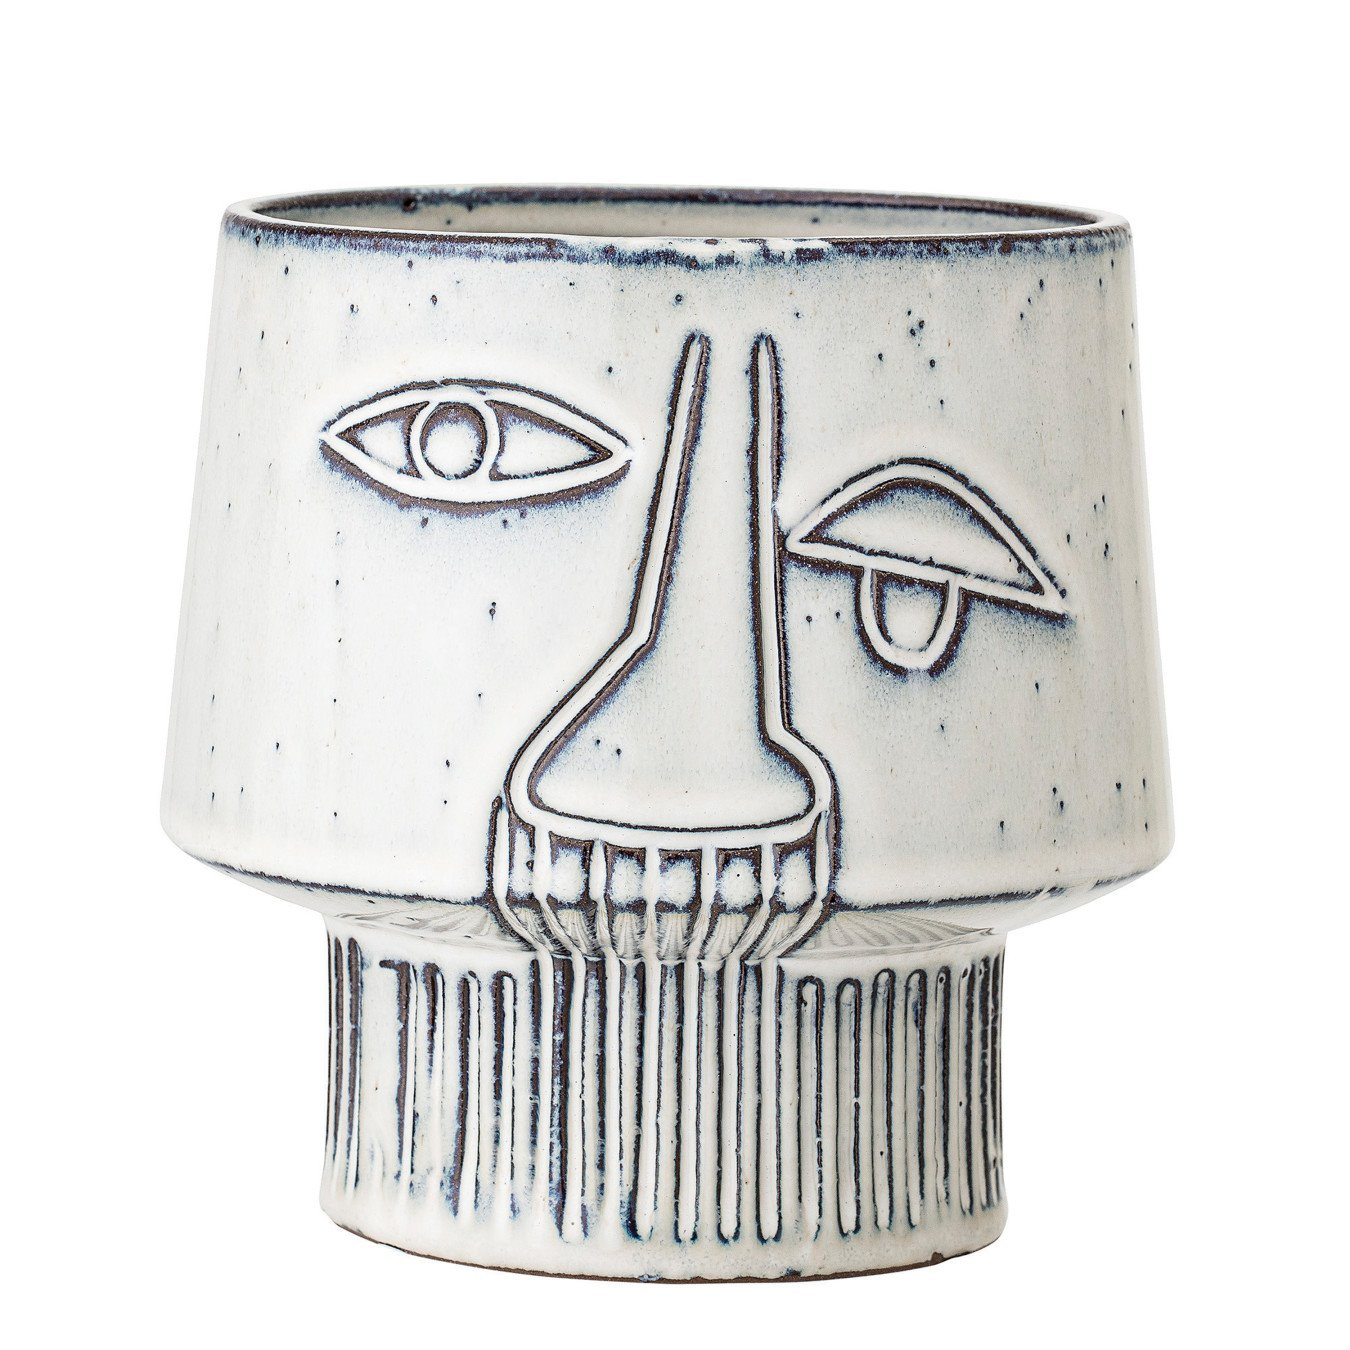 White Stoneware Vase with Abstract Face Design & Reactive Glaze Finish (Each one will vary)